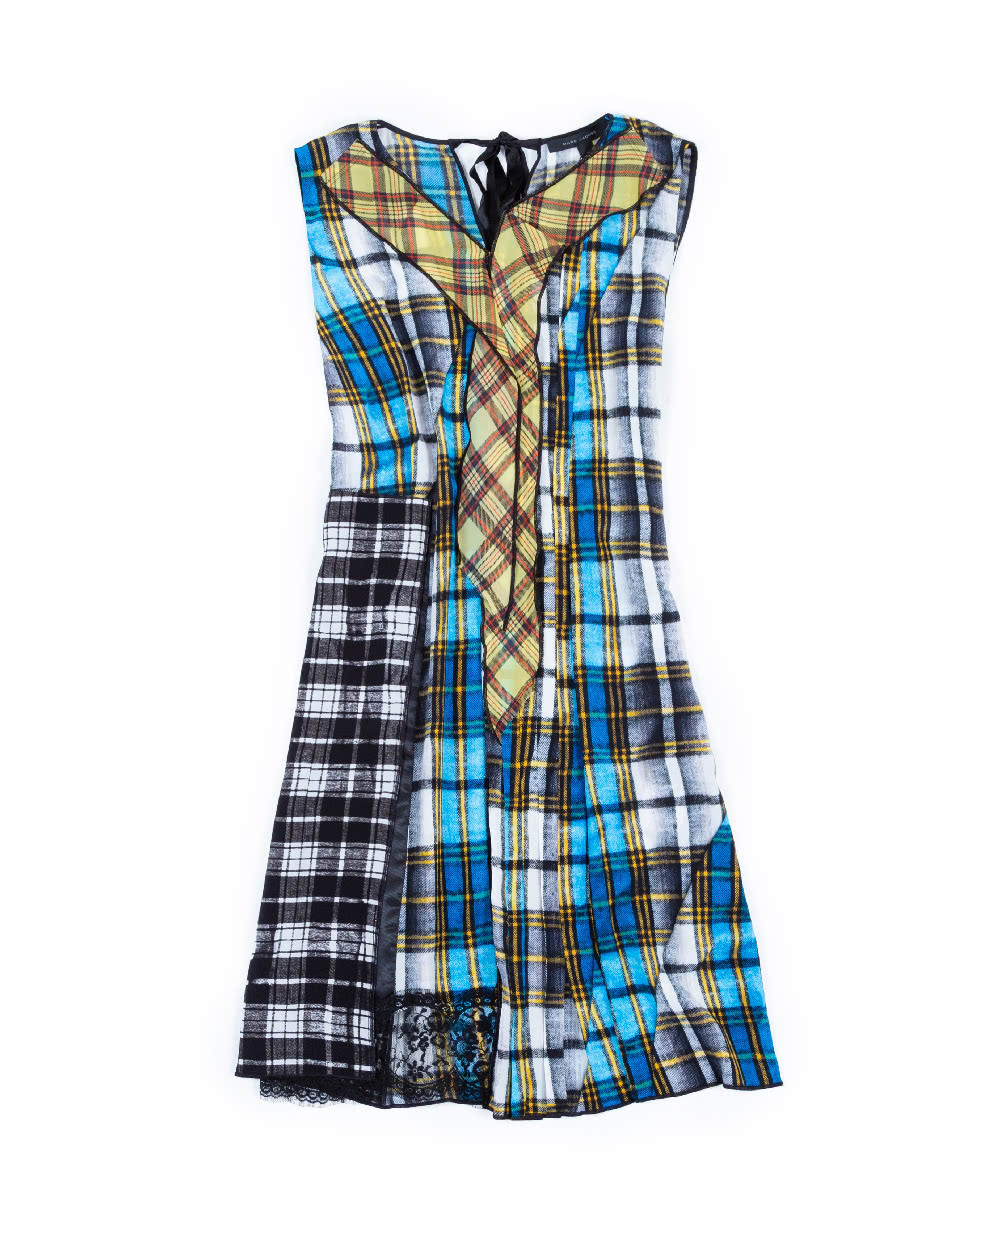 b479850446d0a4 Sleeveless dress Marc Jacobs multicolor with tartan print for women